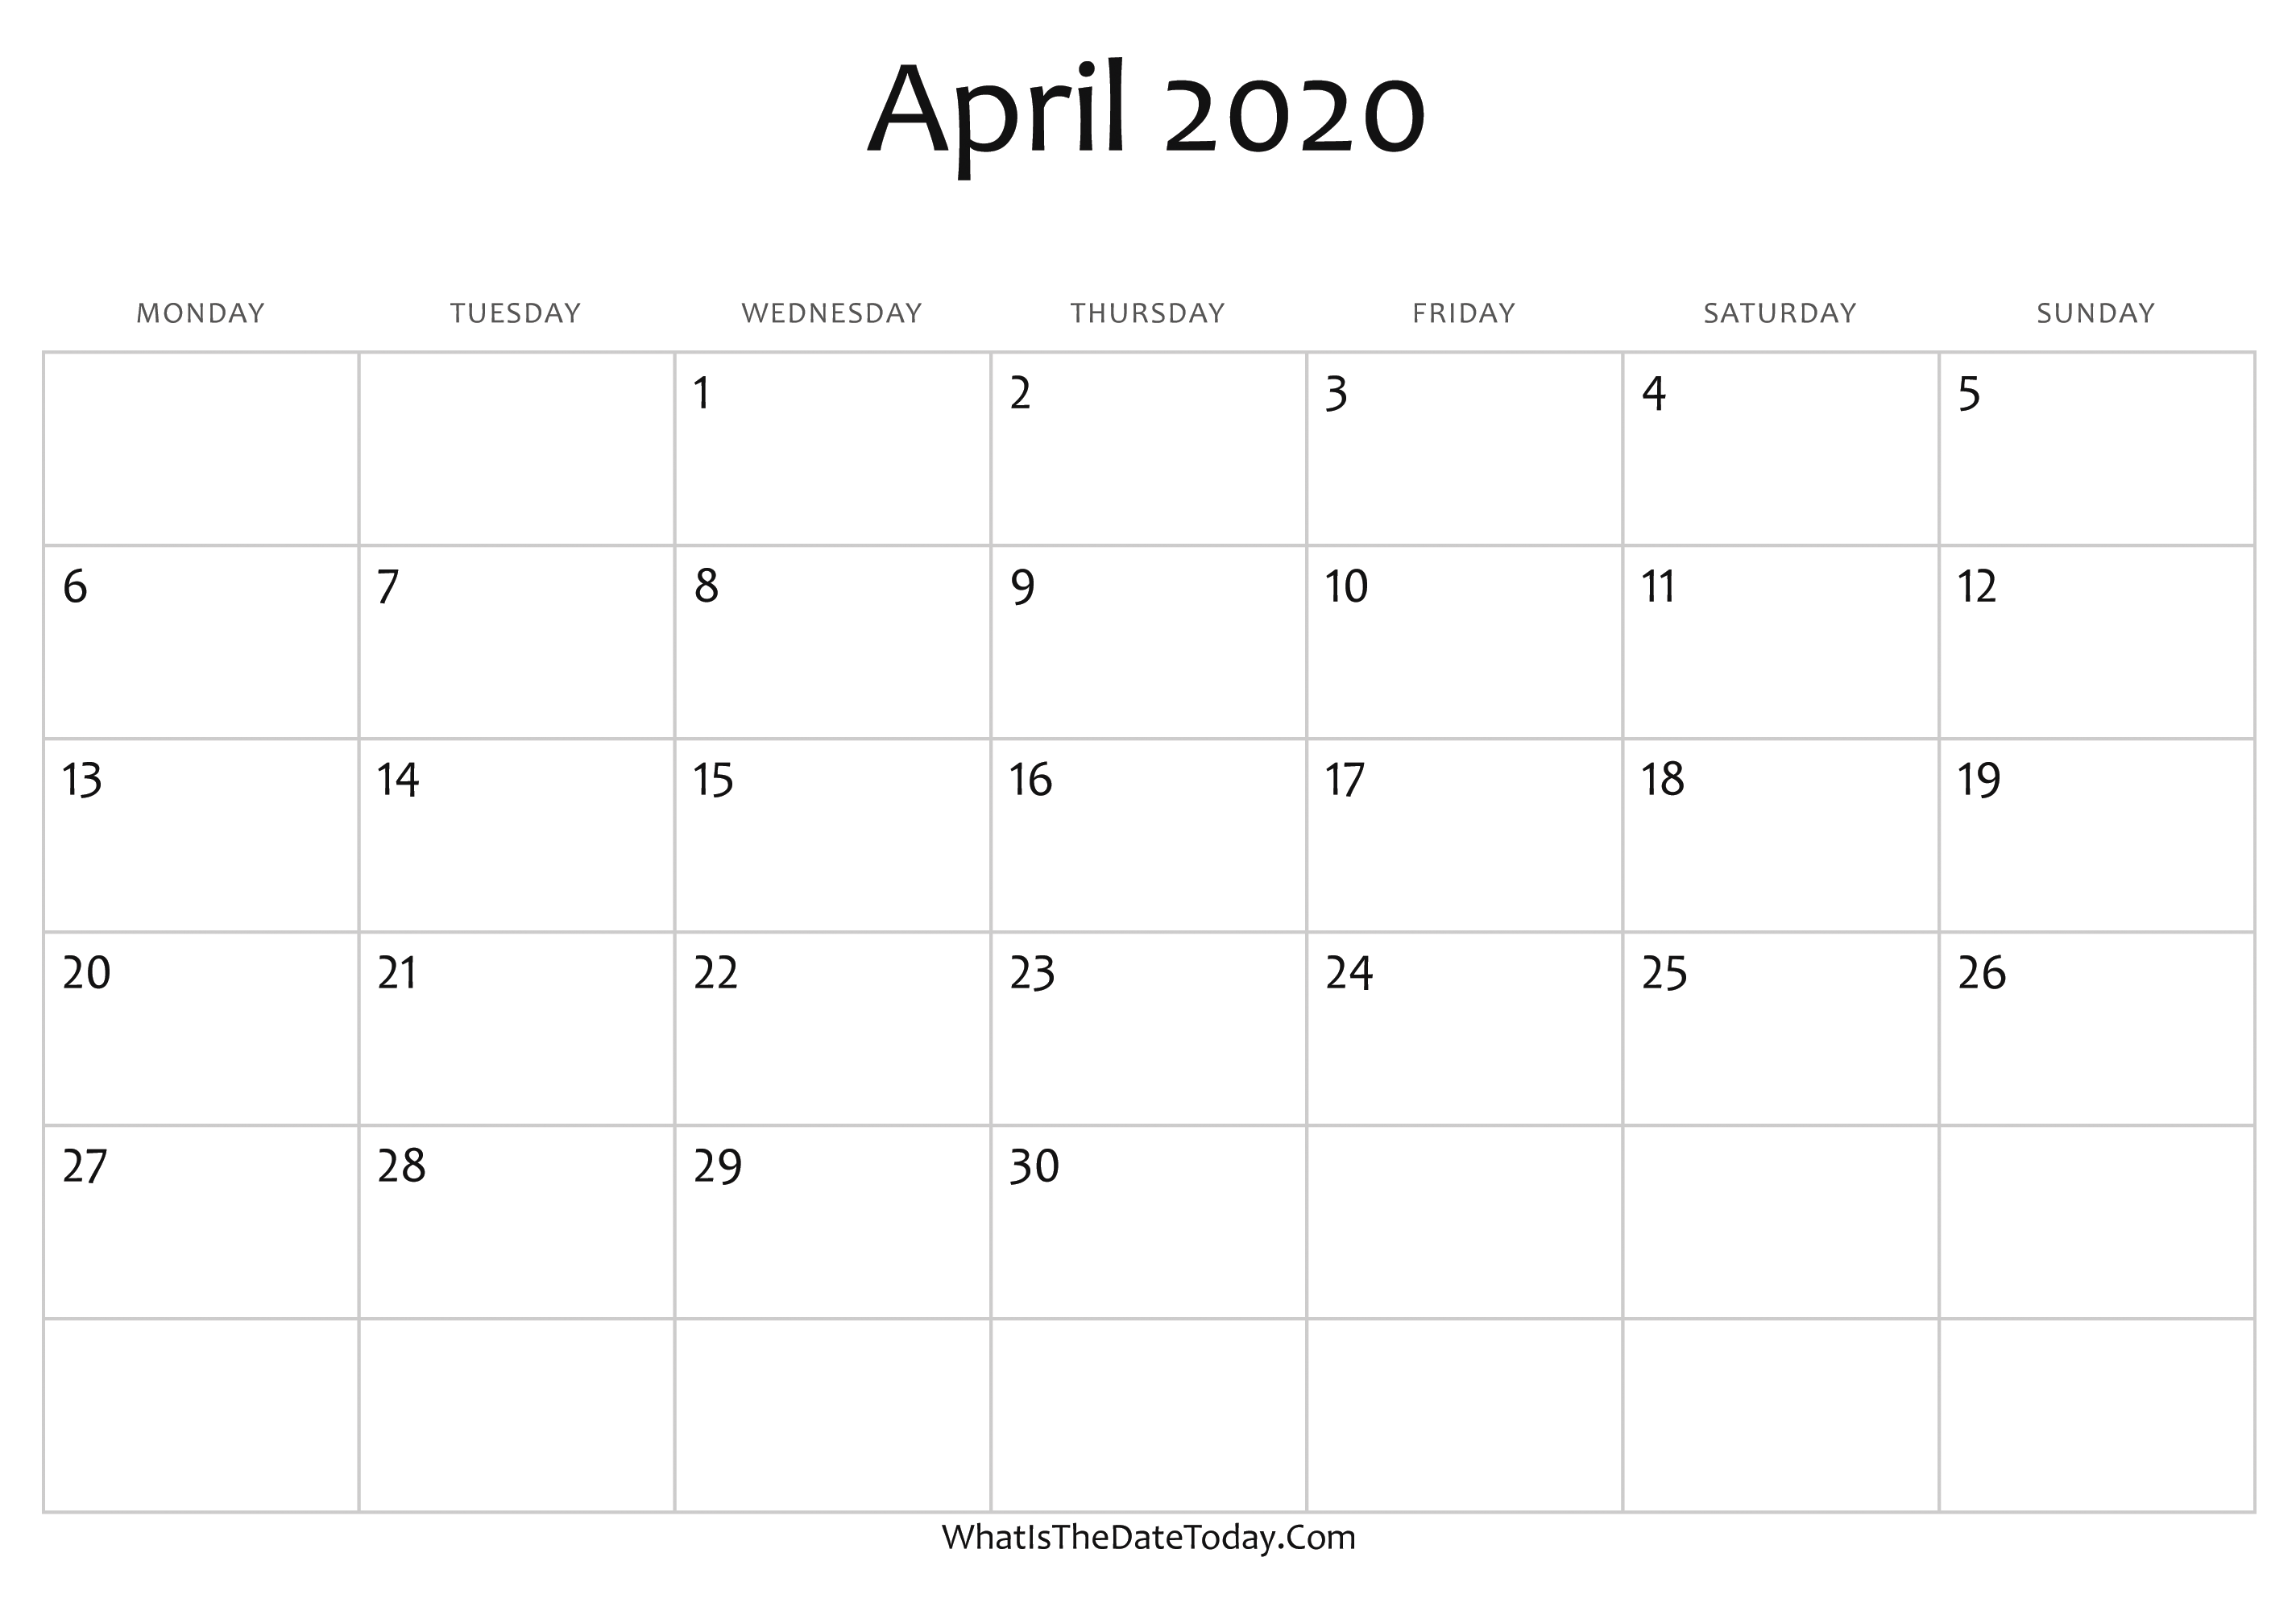 Blank Calendar For April 2020 Blank April Calendar 2020 Editable | Whatisthedatetoday.Com